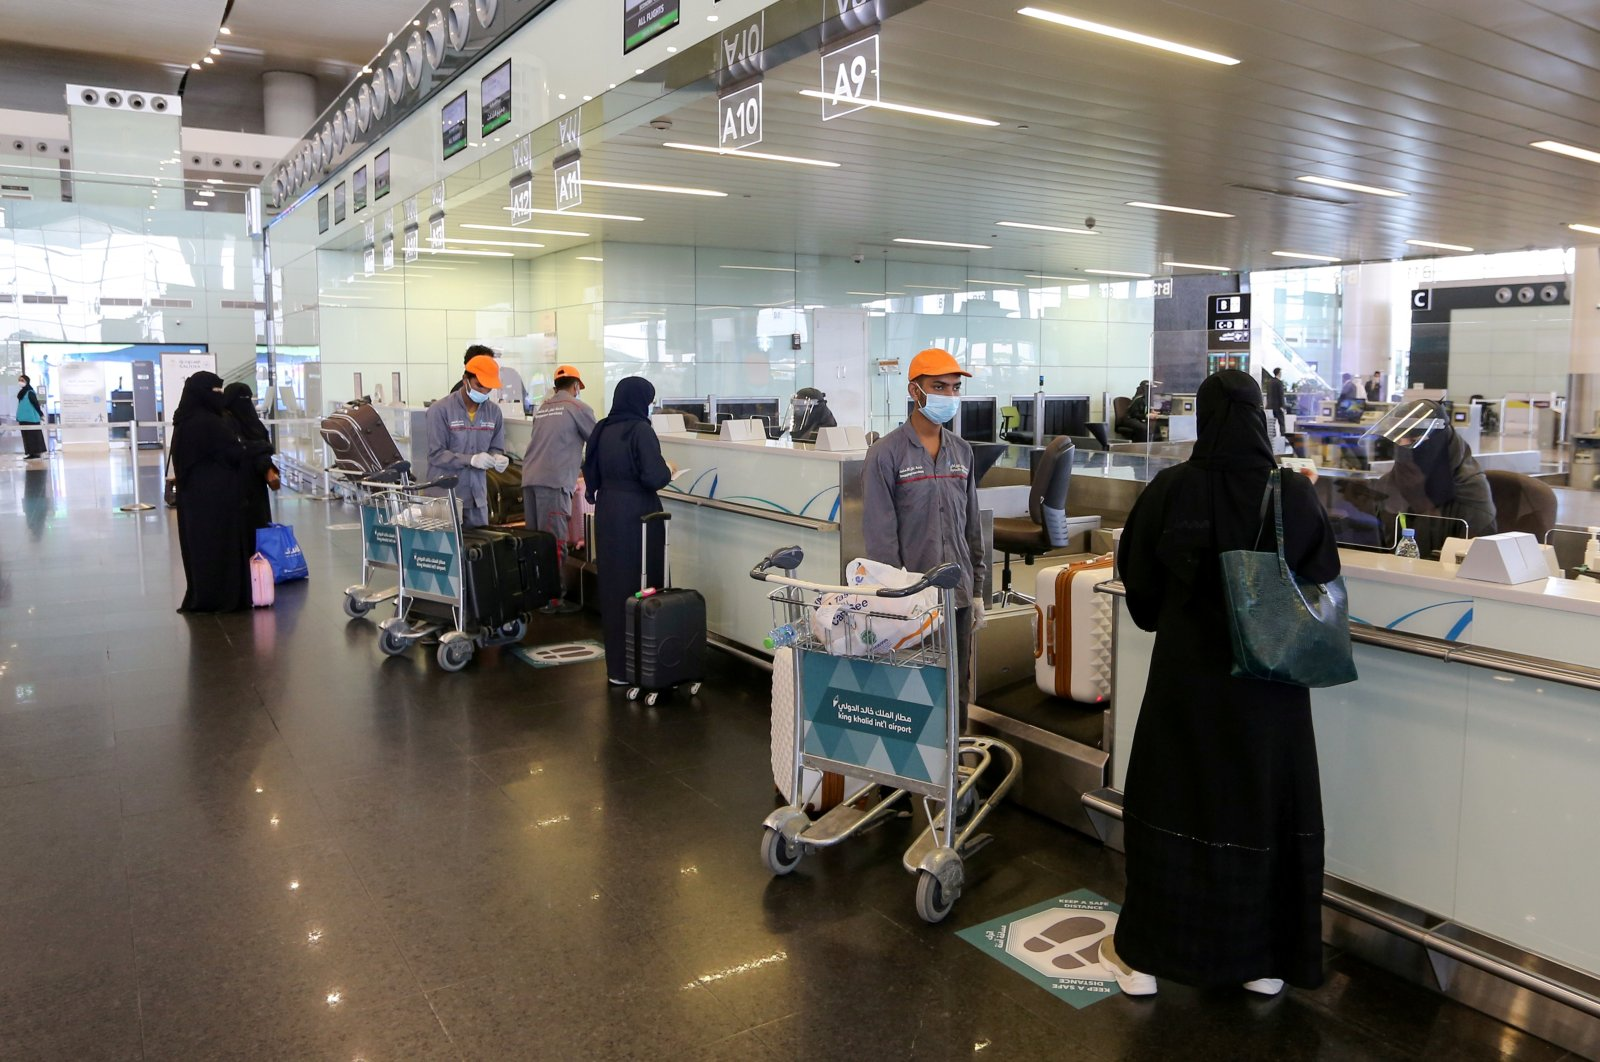 Passengers talk to airline employees at Riyadh International Airport, after Saudi Arabia reopened domestic flights, following the outbreak of COVID-19, in Riyadh, Saudi Arabia, May 31, 2020. (Reuters Photo)